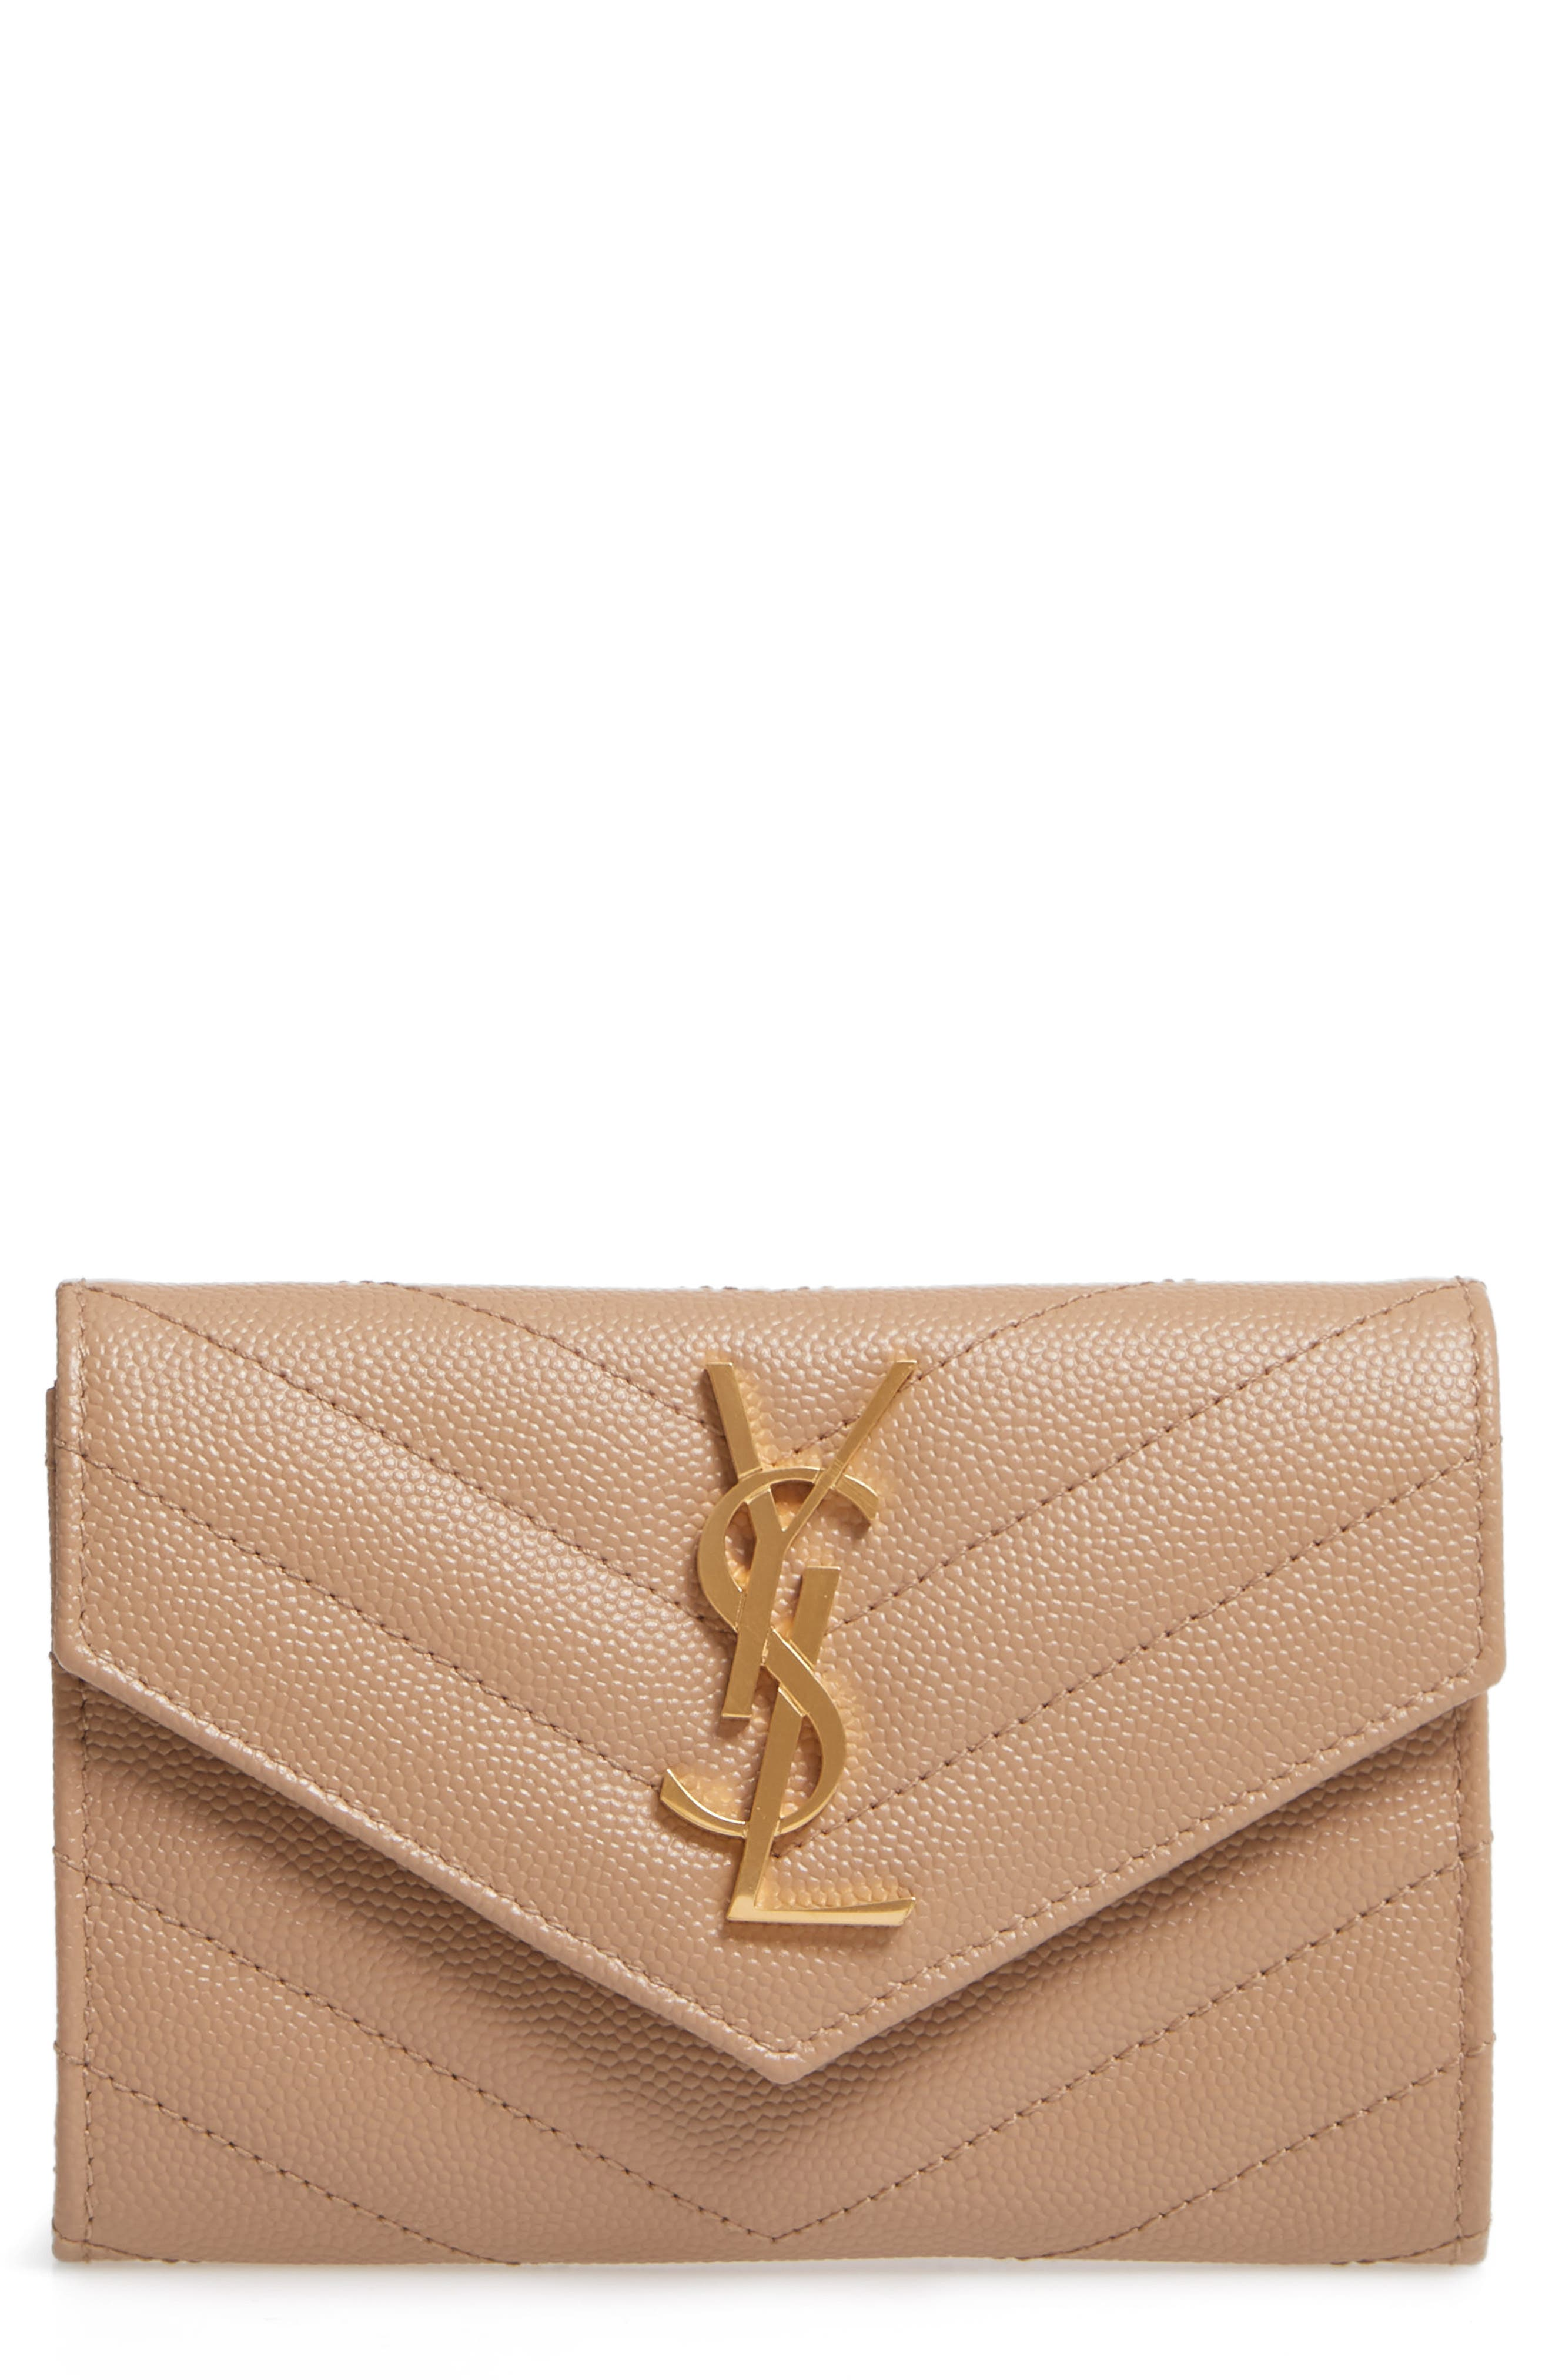 SAINT LAURENT, 'Monogram' Quilted Leather French Wallet, Main thumbnail 1, color, 253